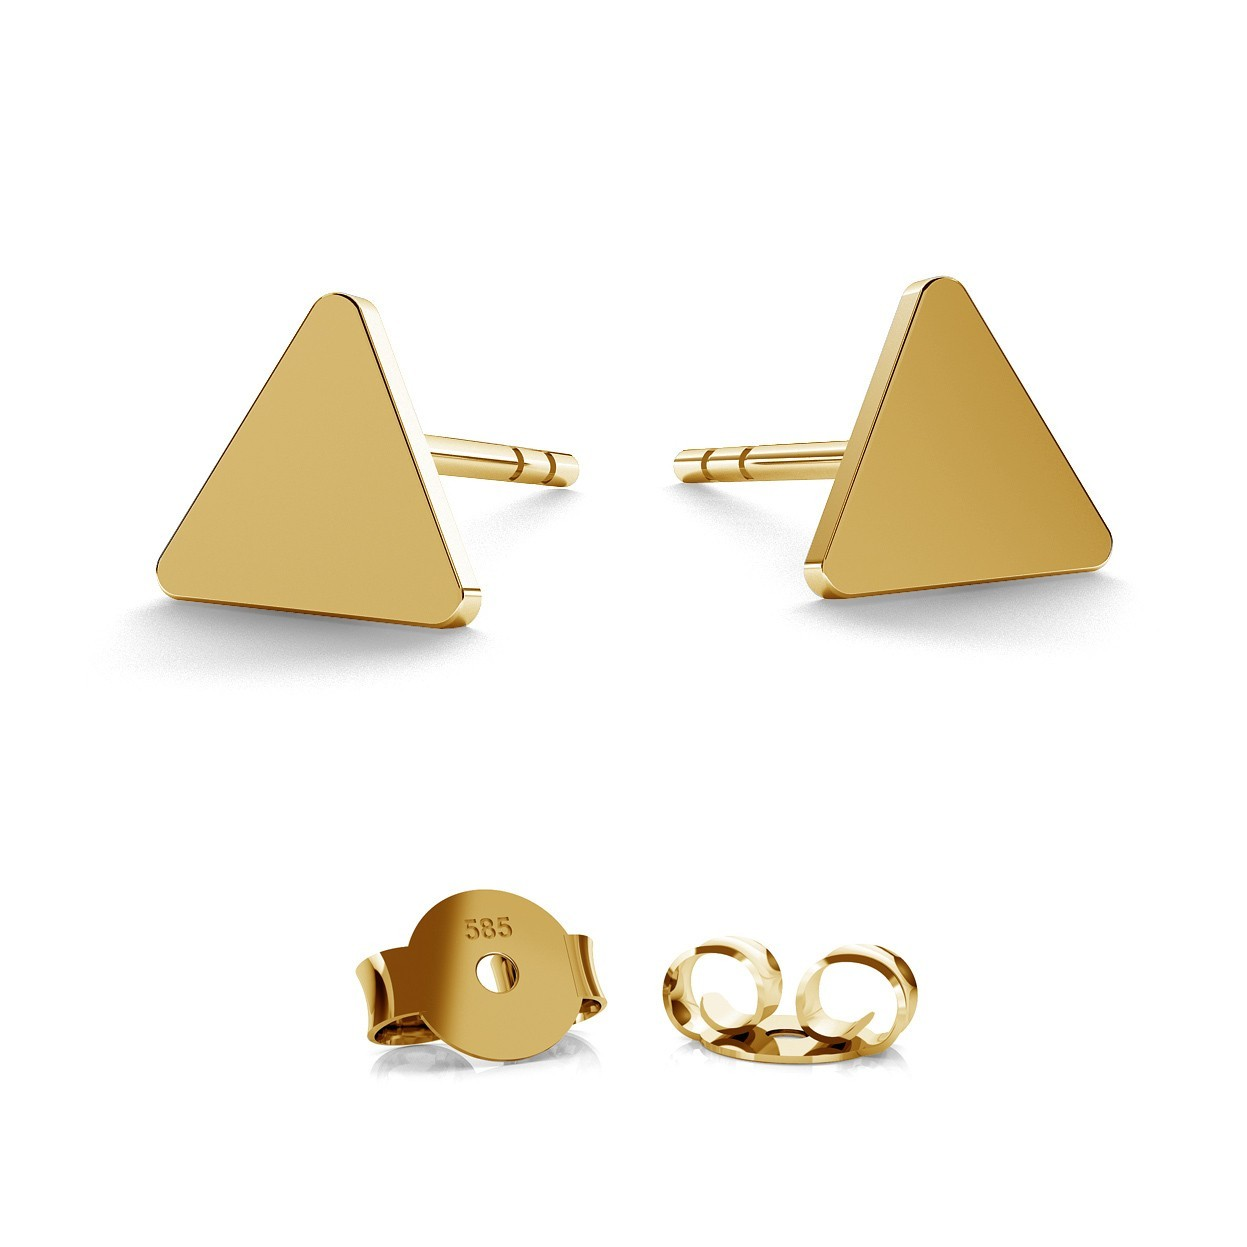 14K GOLD TRIANGLE EARRING, MODEL 935